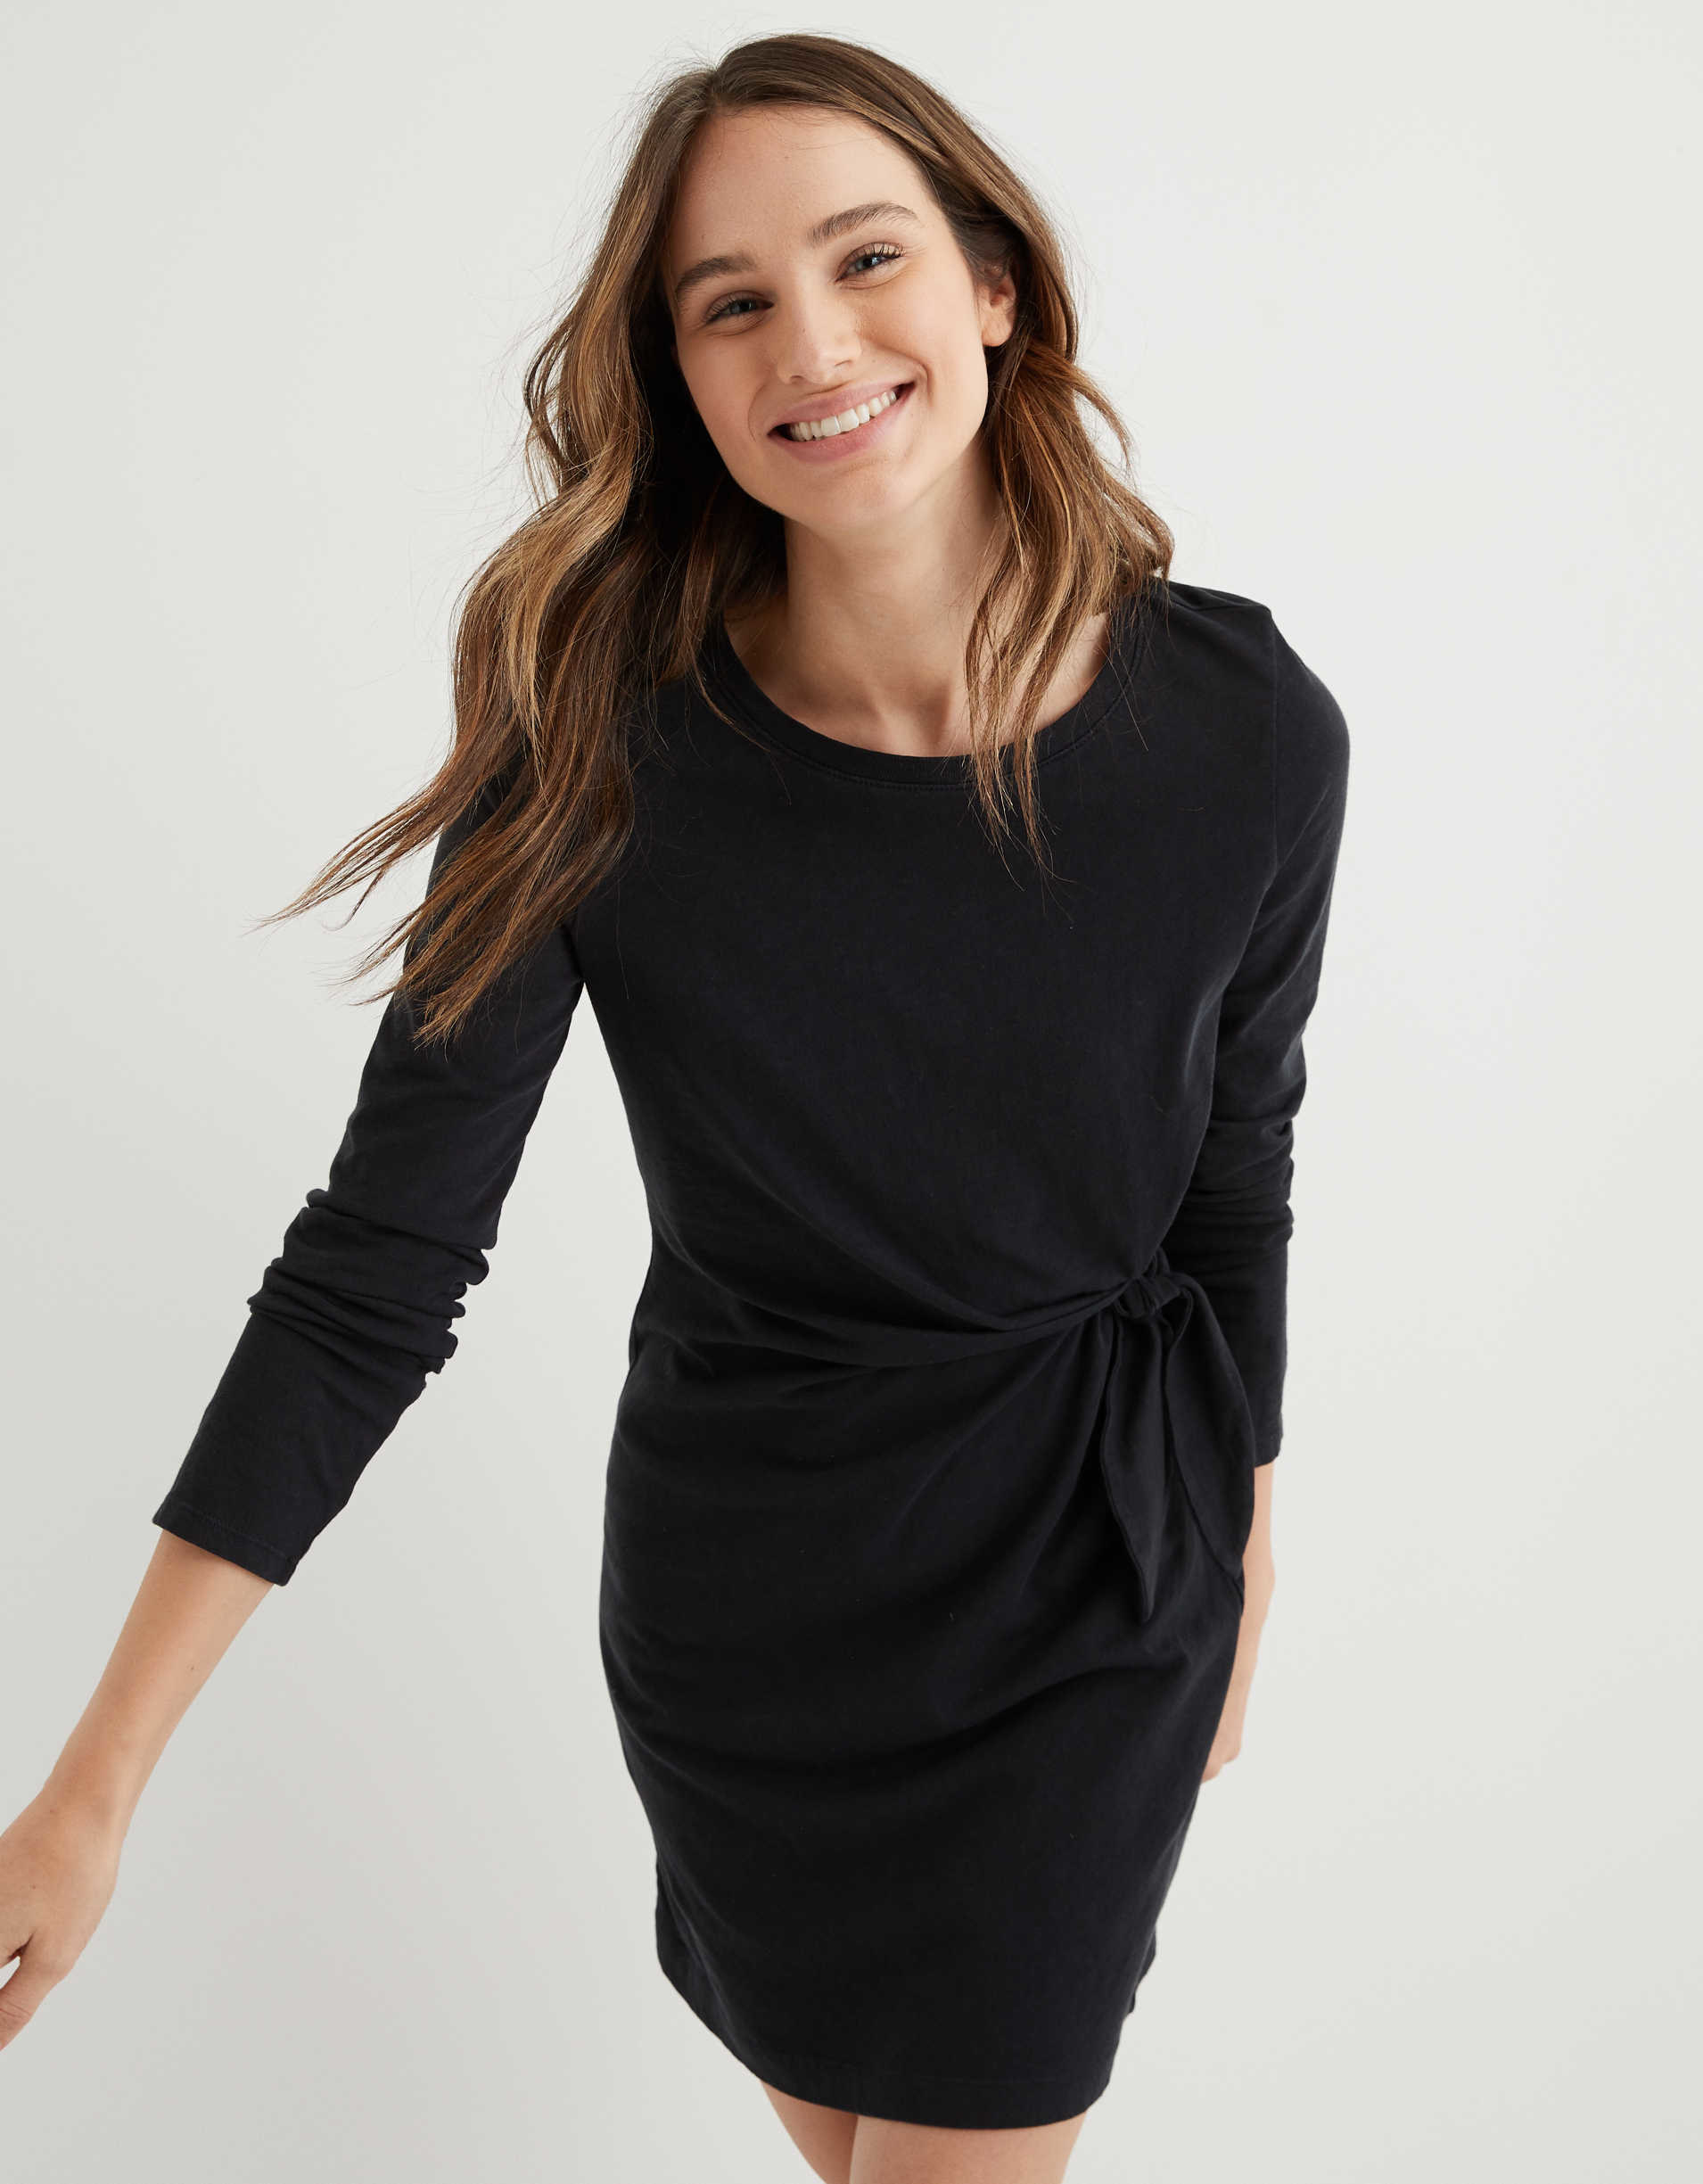 Model wearing the long-sleeved thigh-length scoop neck dress with a tie on the left side in black